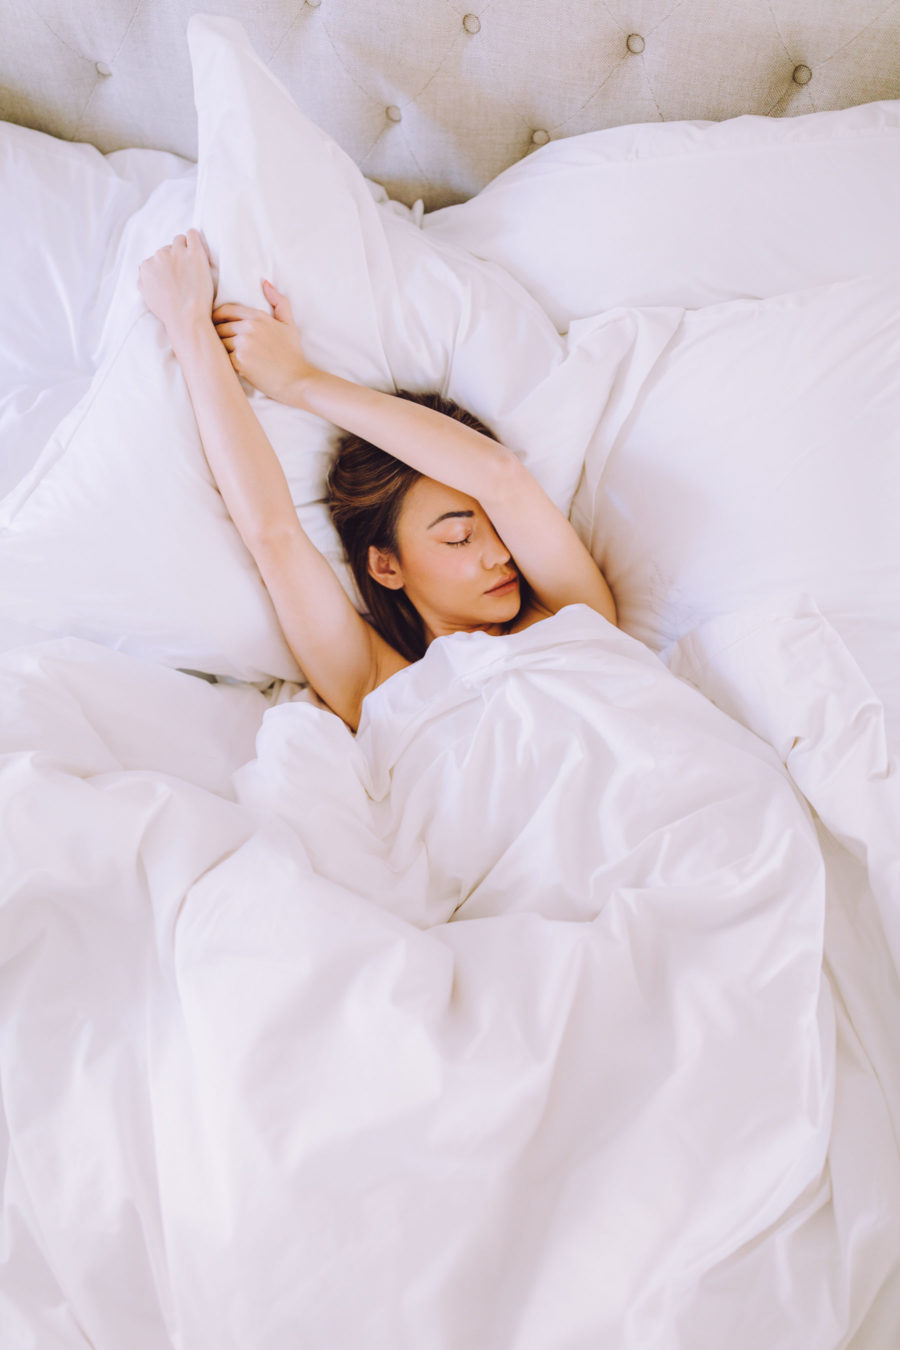 jessica wang sleeping in bed for more self-care // Jessica Wang - Notjessfashion.com